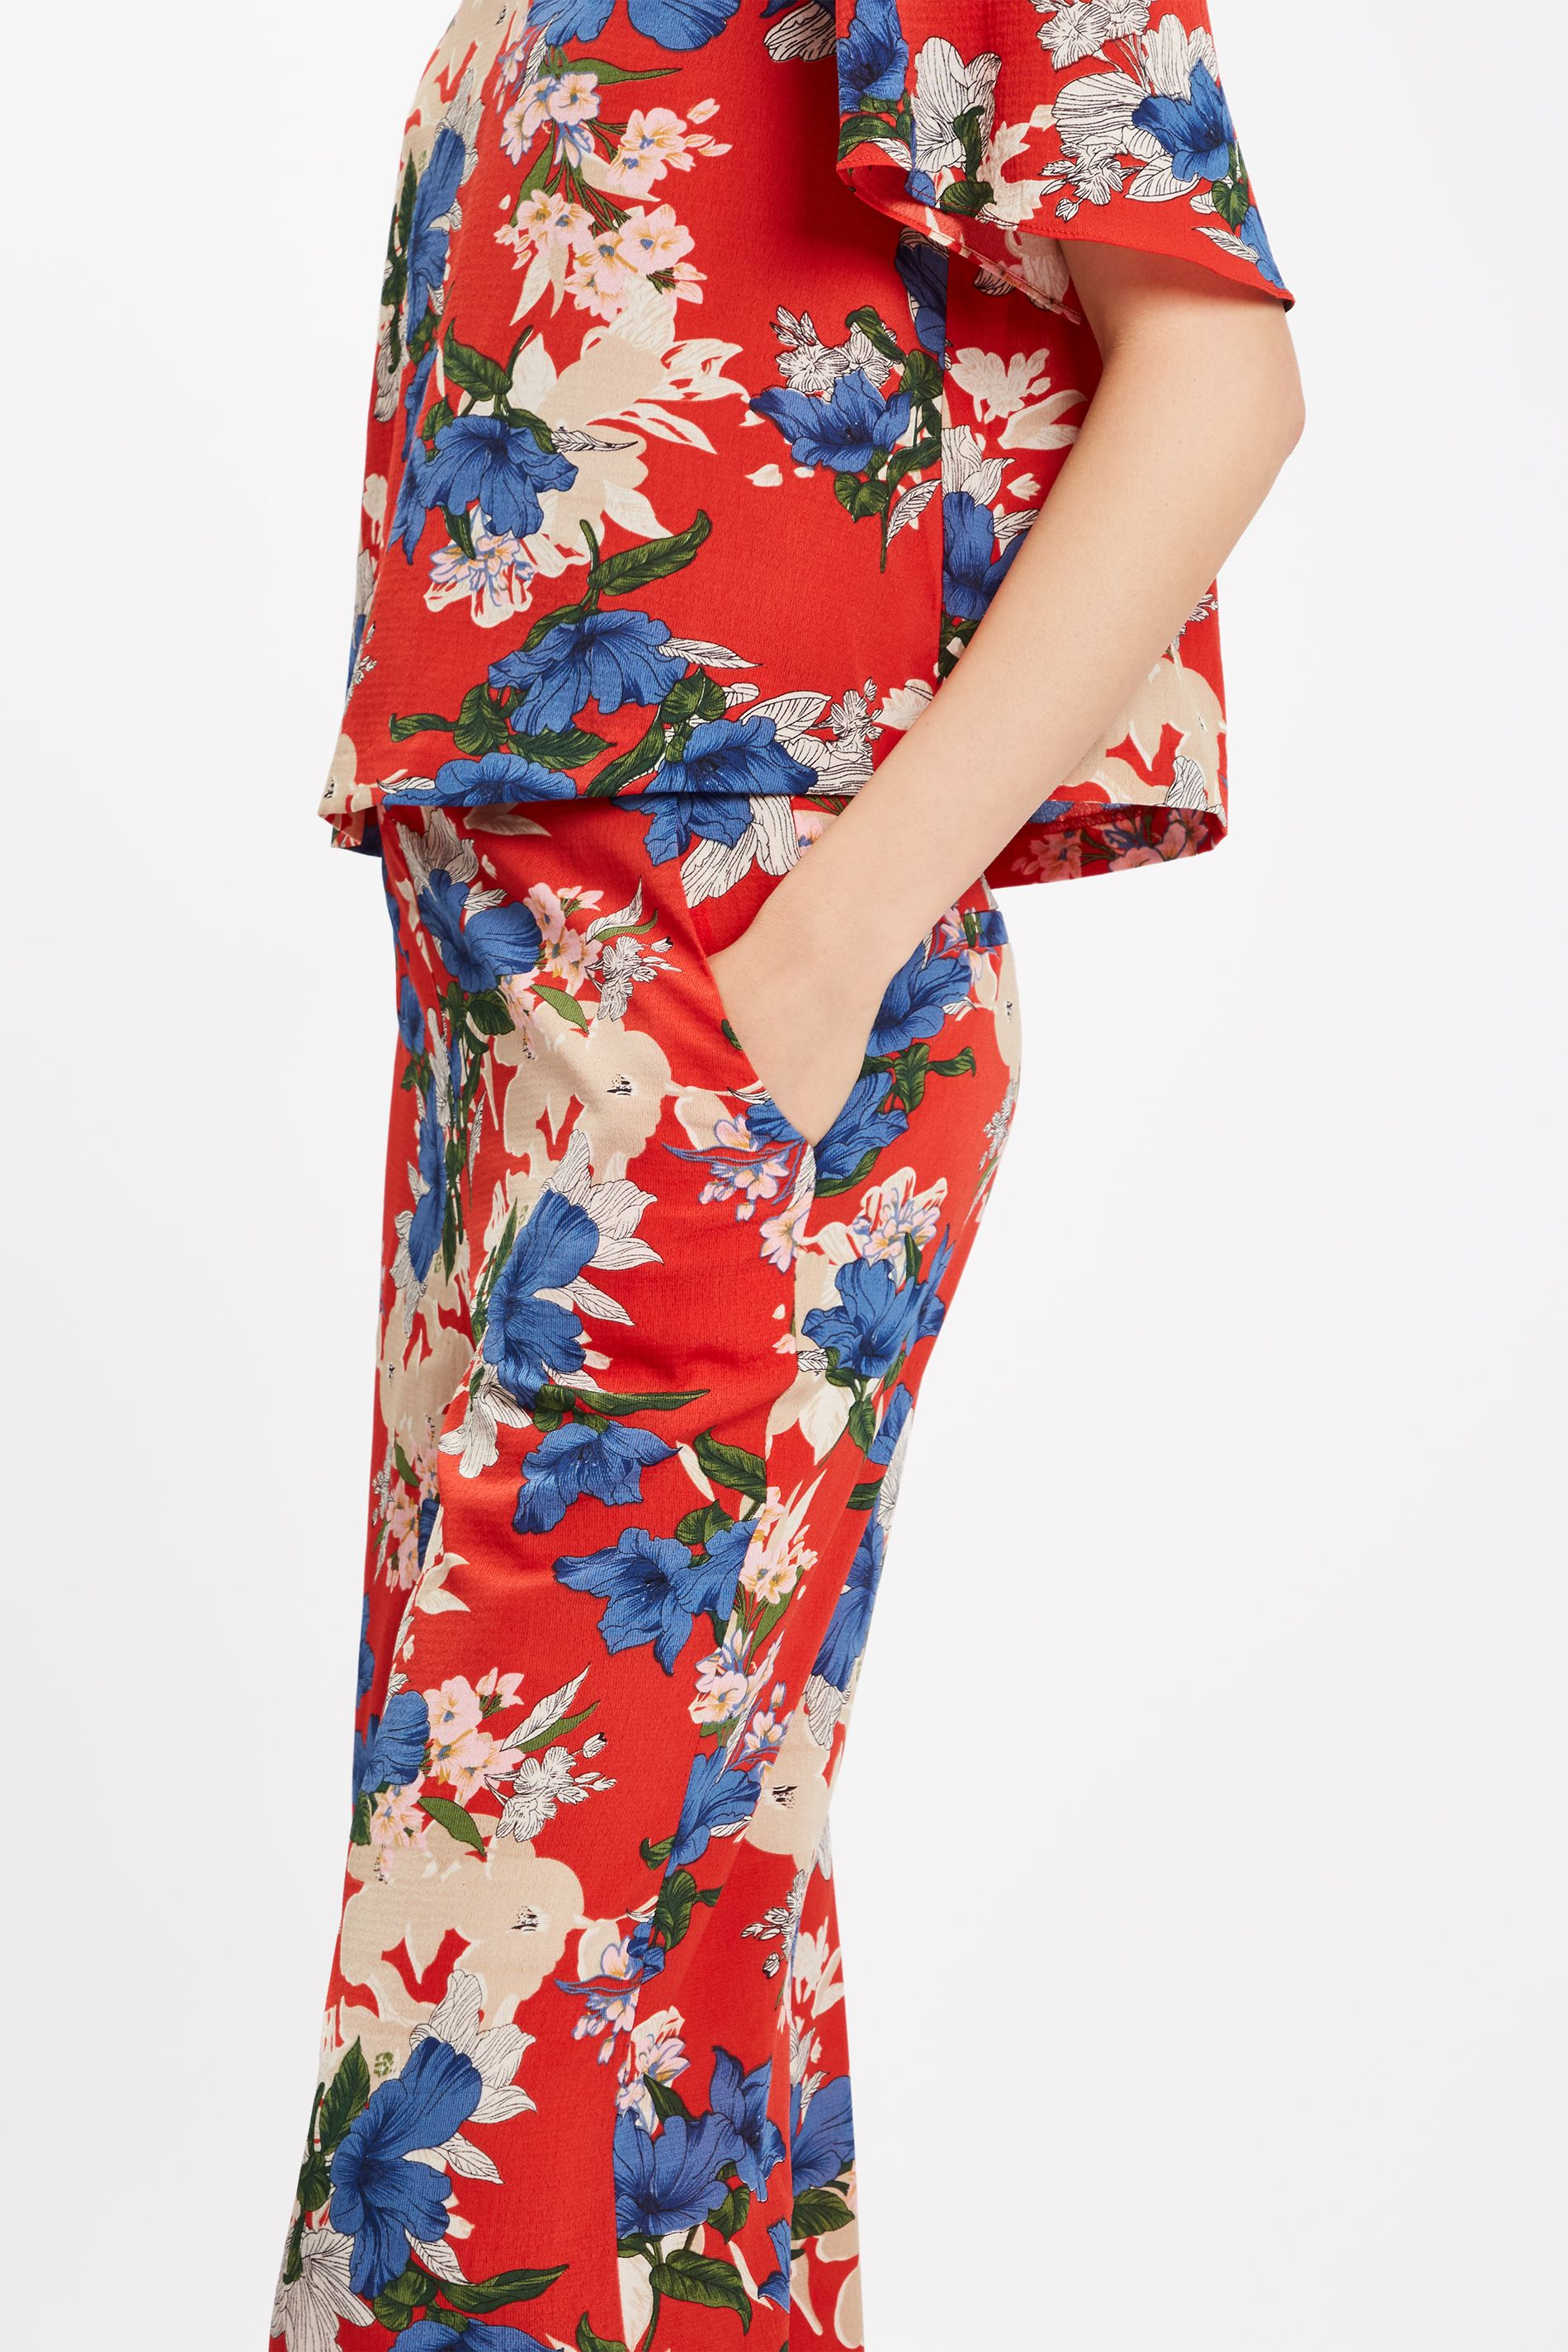 SING Floral Red Wide Leg Trousers